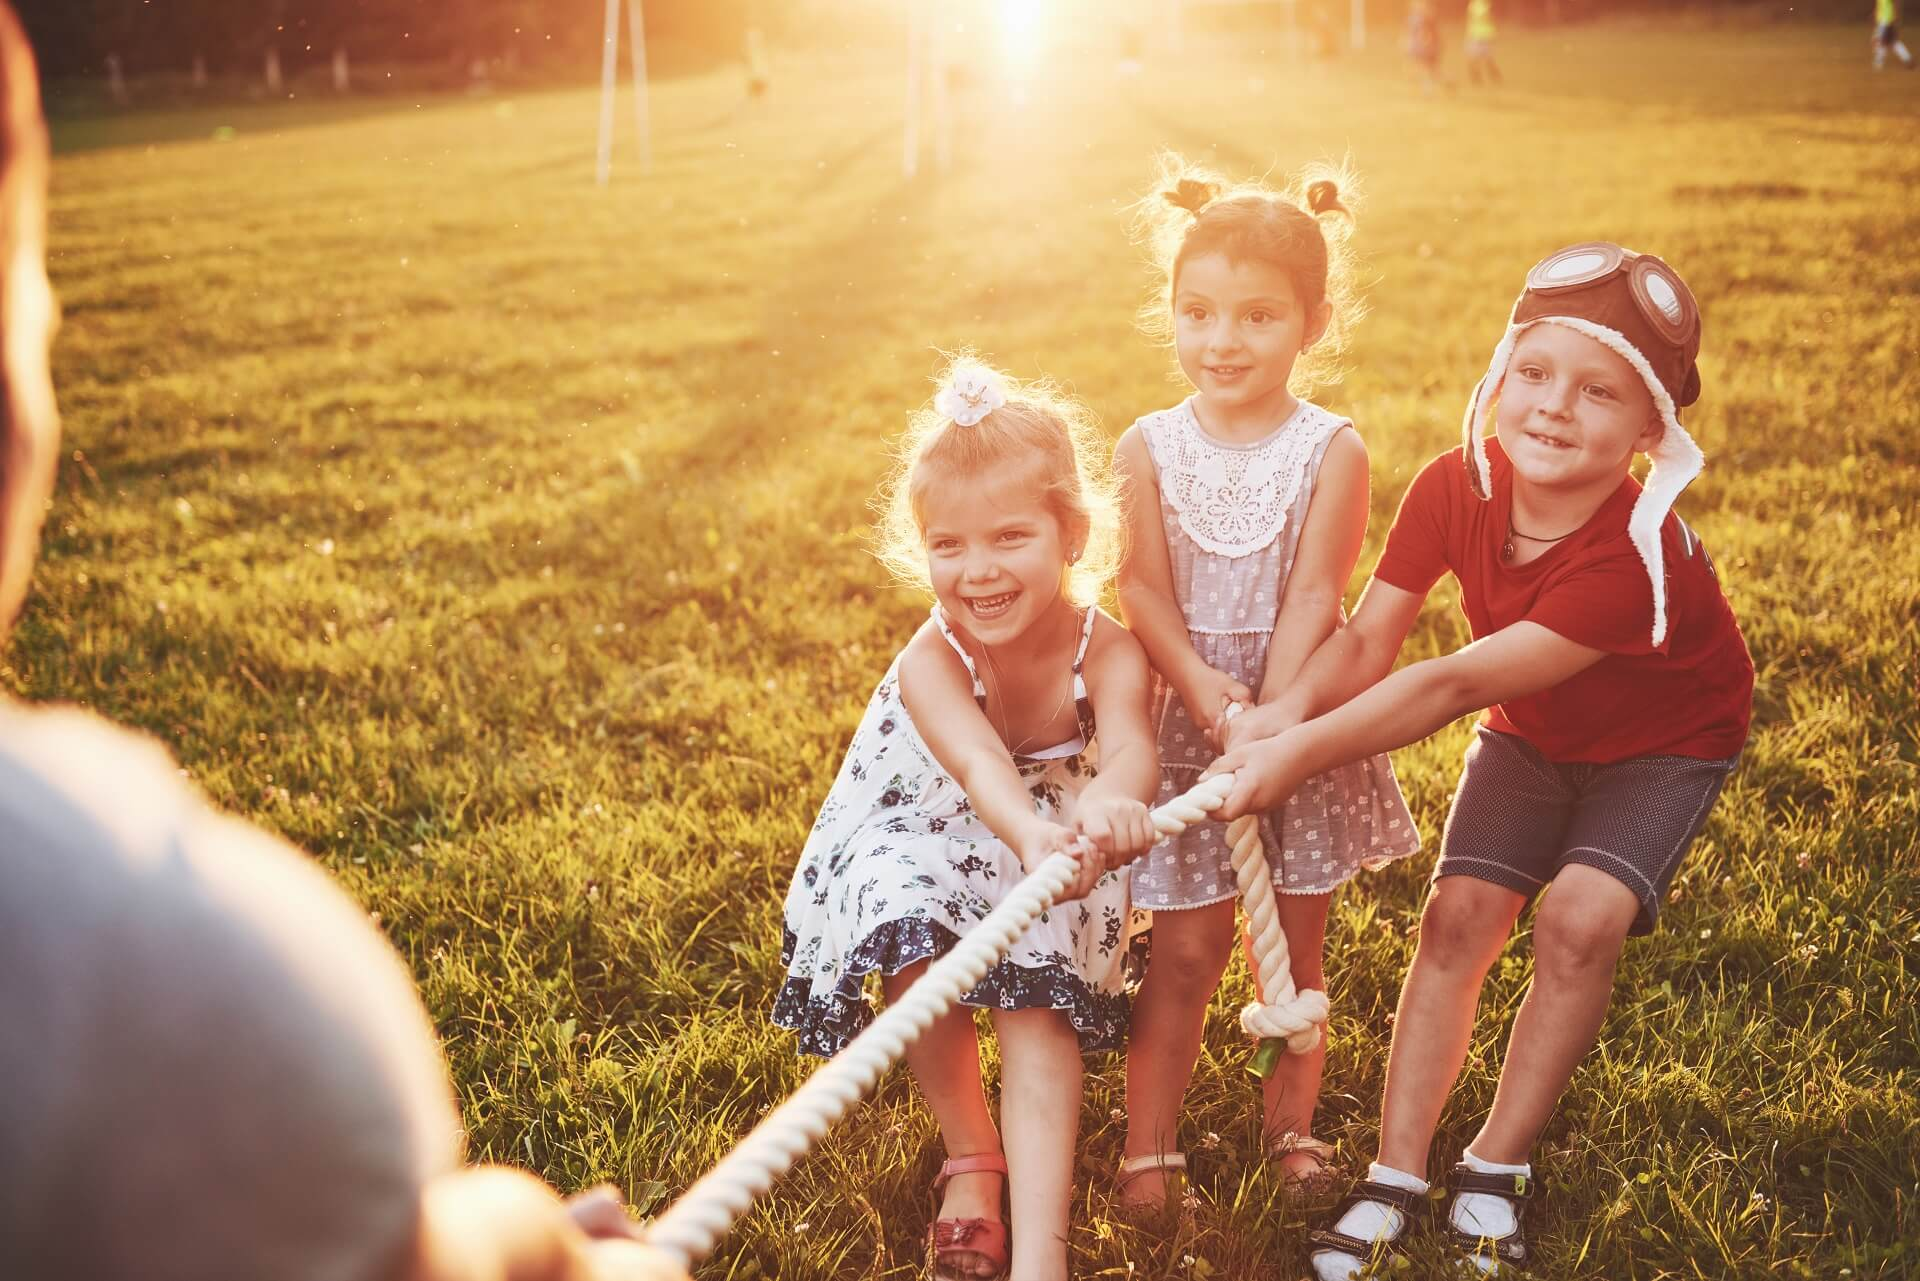 Classic Outdoor Games for Kids to Play with Friends